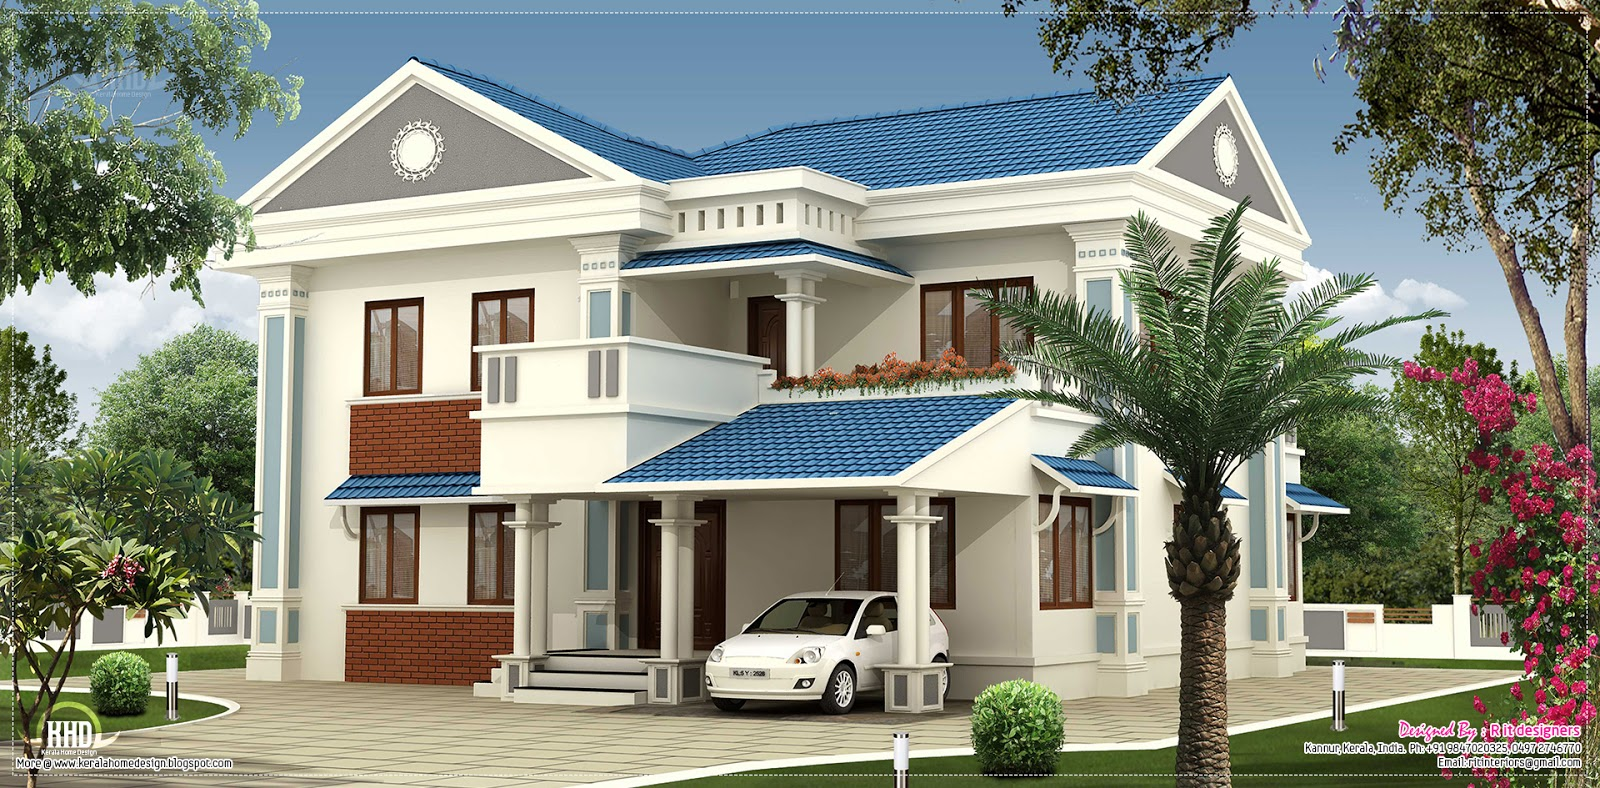 2000 beautiful villa elevation design house design plans - Beautiful design of a house ...